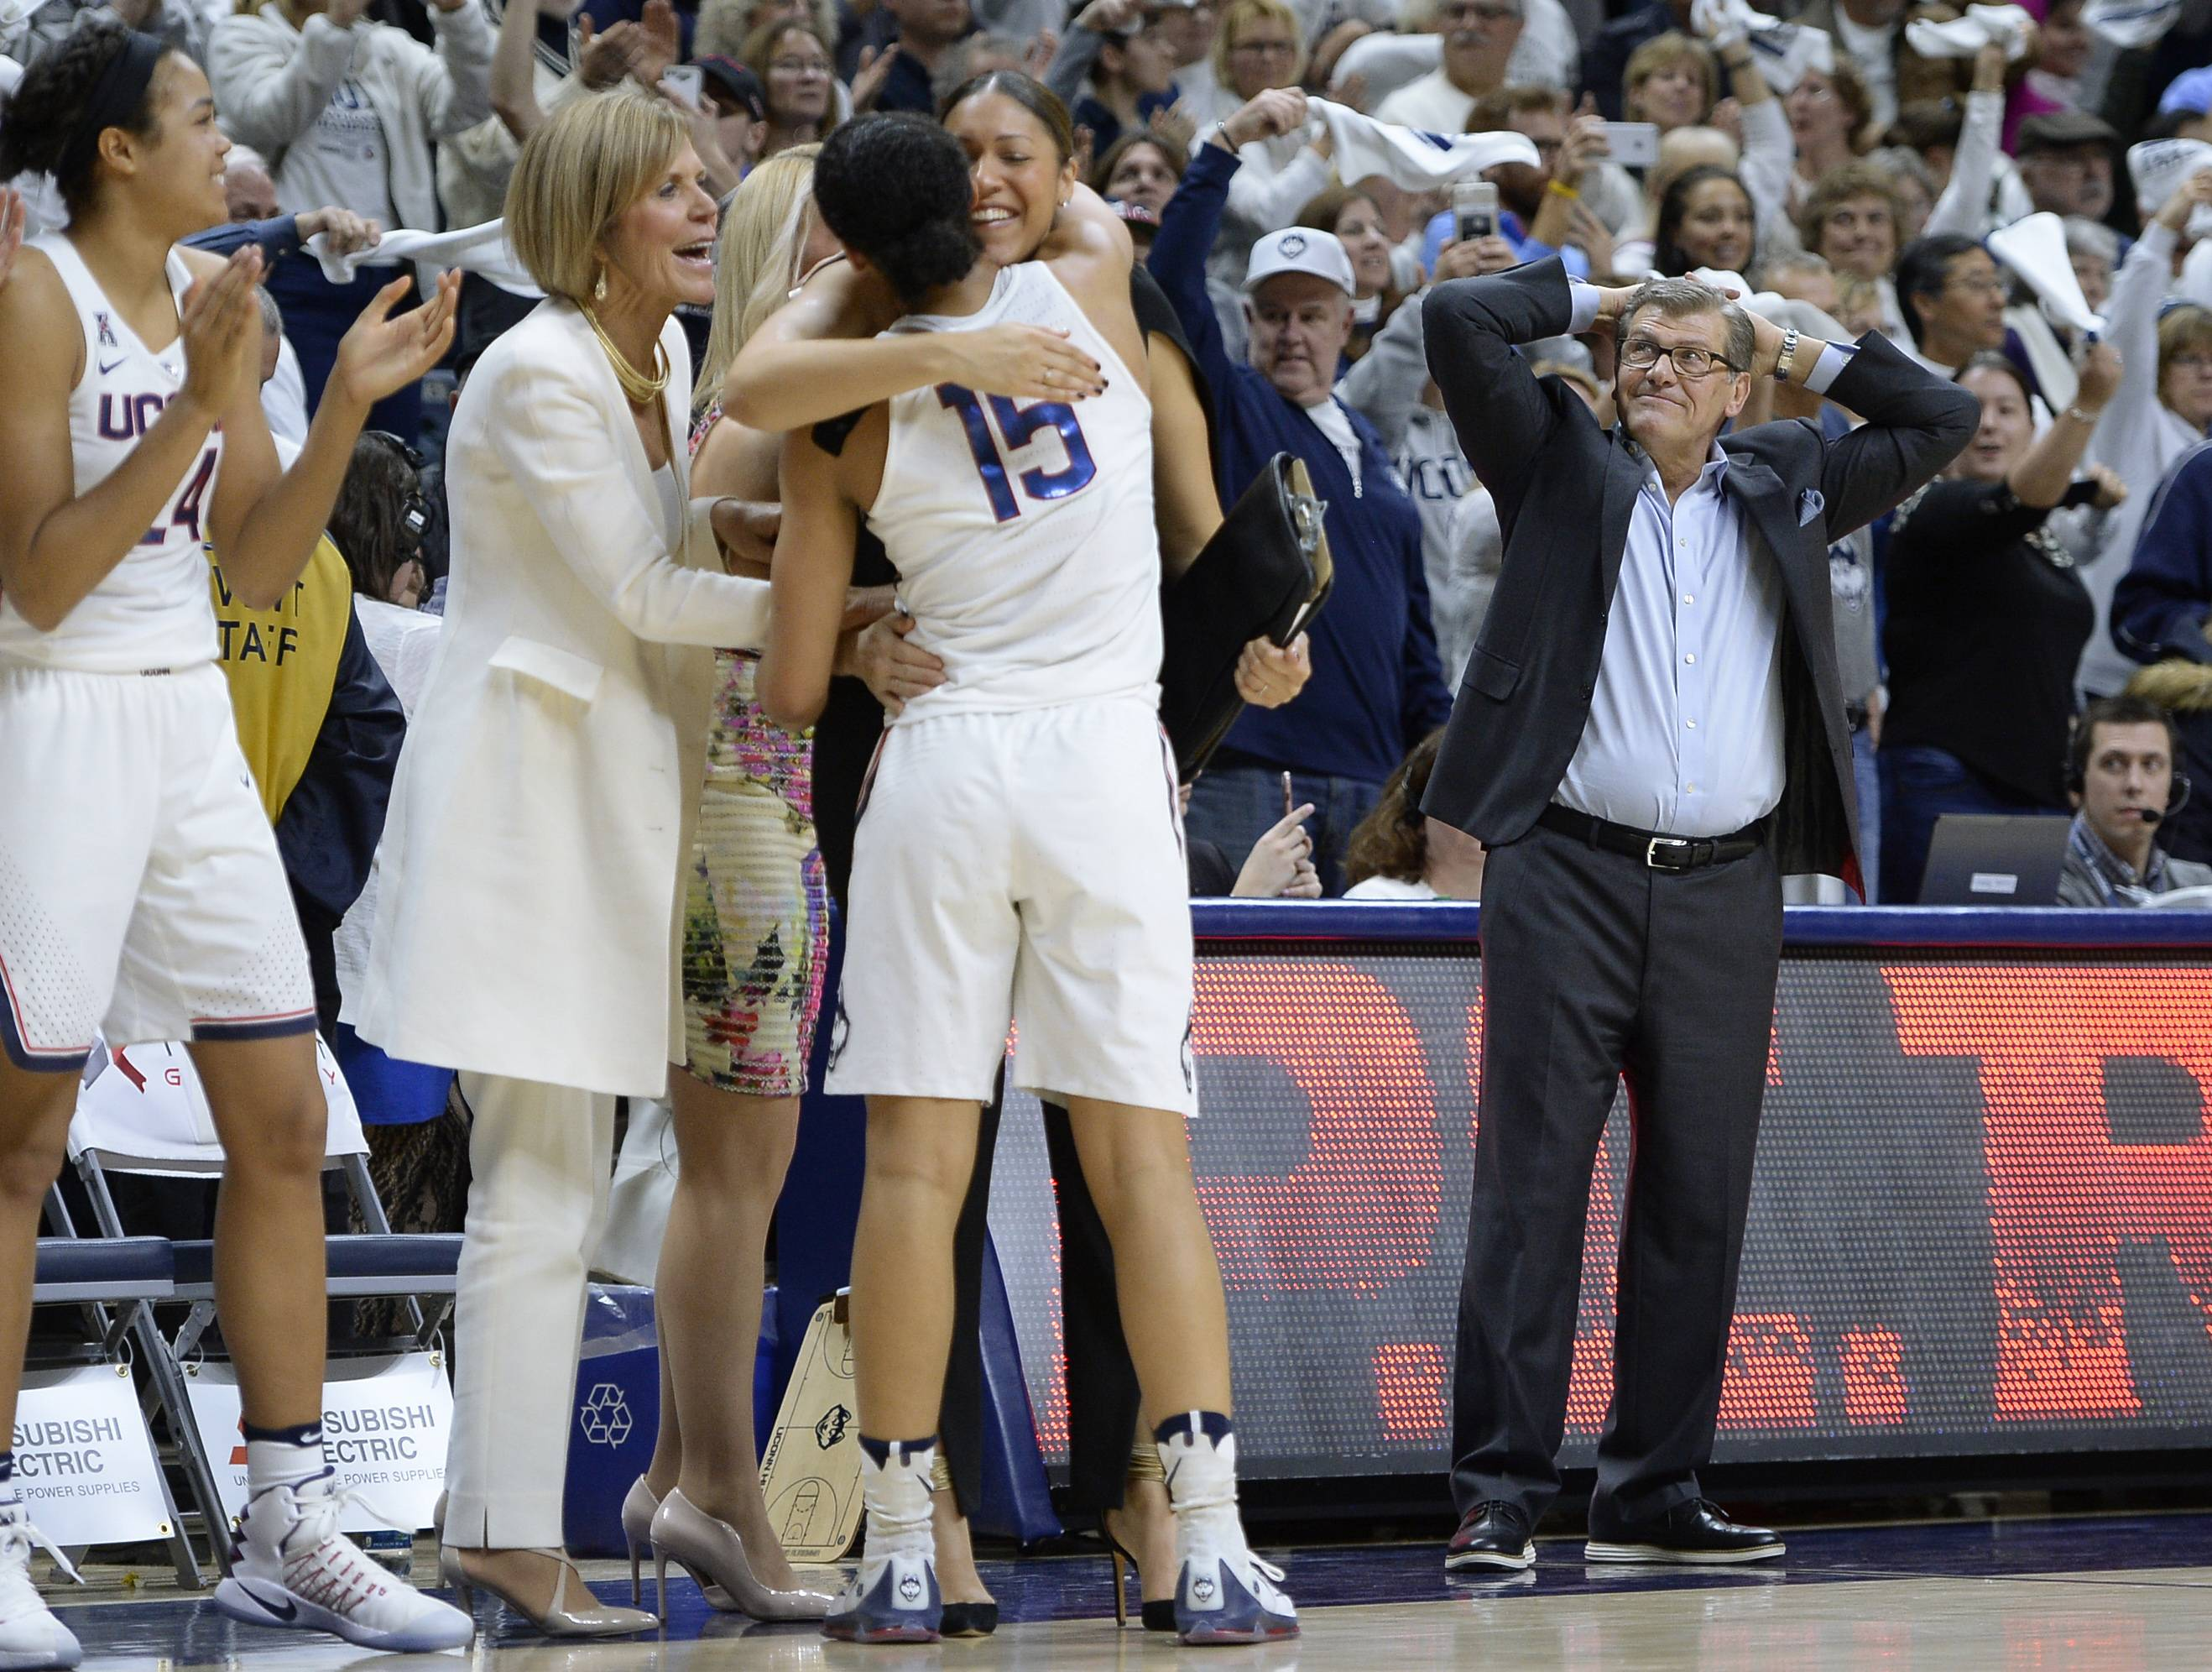 Connecticut head coach Geno Auriemma, right, reacts as Connecticut's Gabby Williams (15) is congratulated by associated head coach Chris Dailey and embraced by assistant coach Marisa Moseley at the end of their game against South Carolina, Monday, in Storrs, Conn. The win was UConn's 100th straight. Some don't want to give the Connecticut women's basketball team its due for 100 straight wins. Winning 100 straight games is an amazing accomplishment for any team at any level.